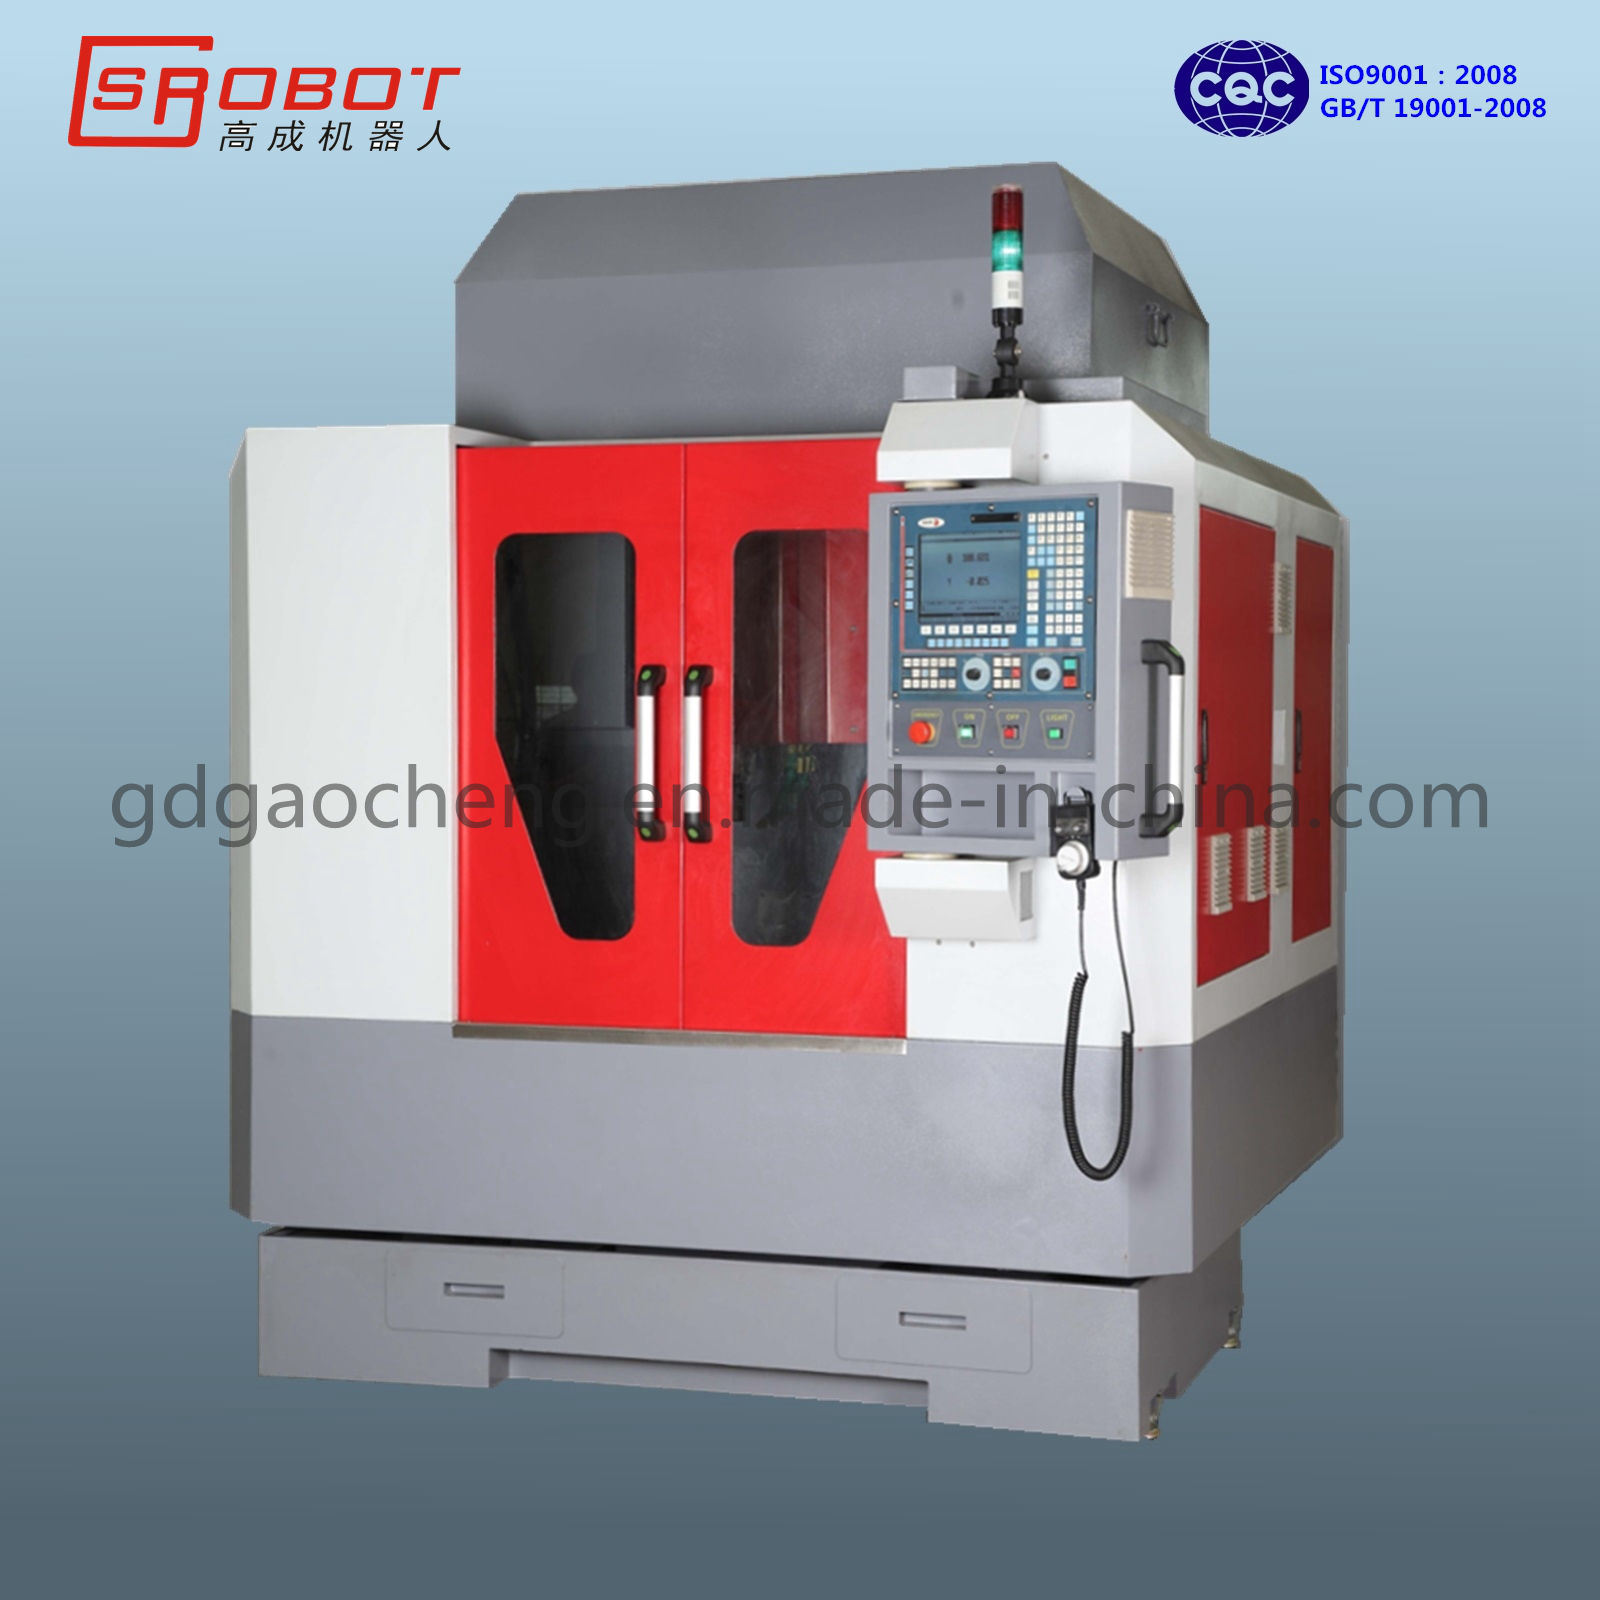 760 X 640mm CNC Milling and Engraving Machine GS-E760